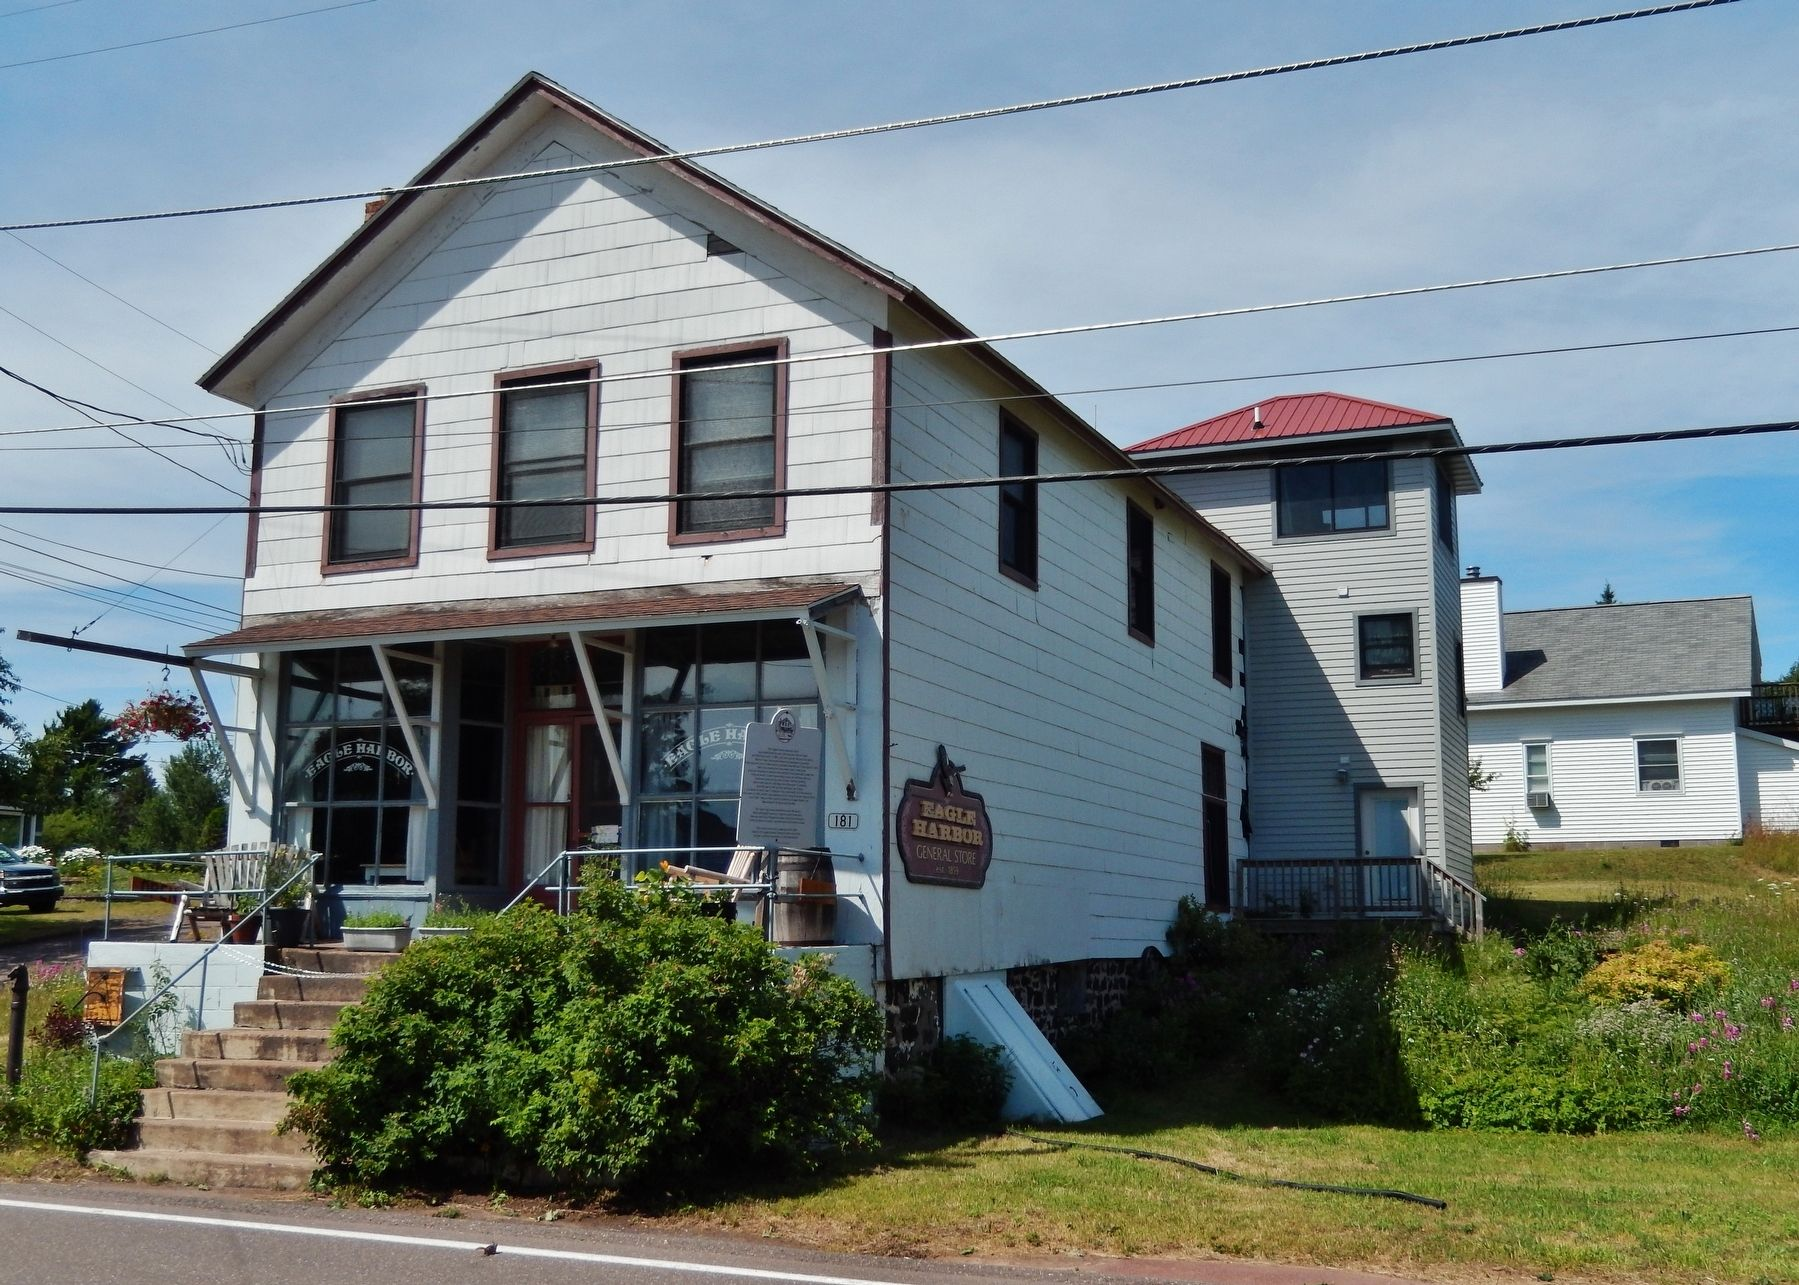 Eagle Harbor General Store image. Click for full size.